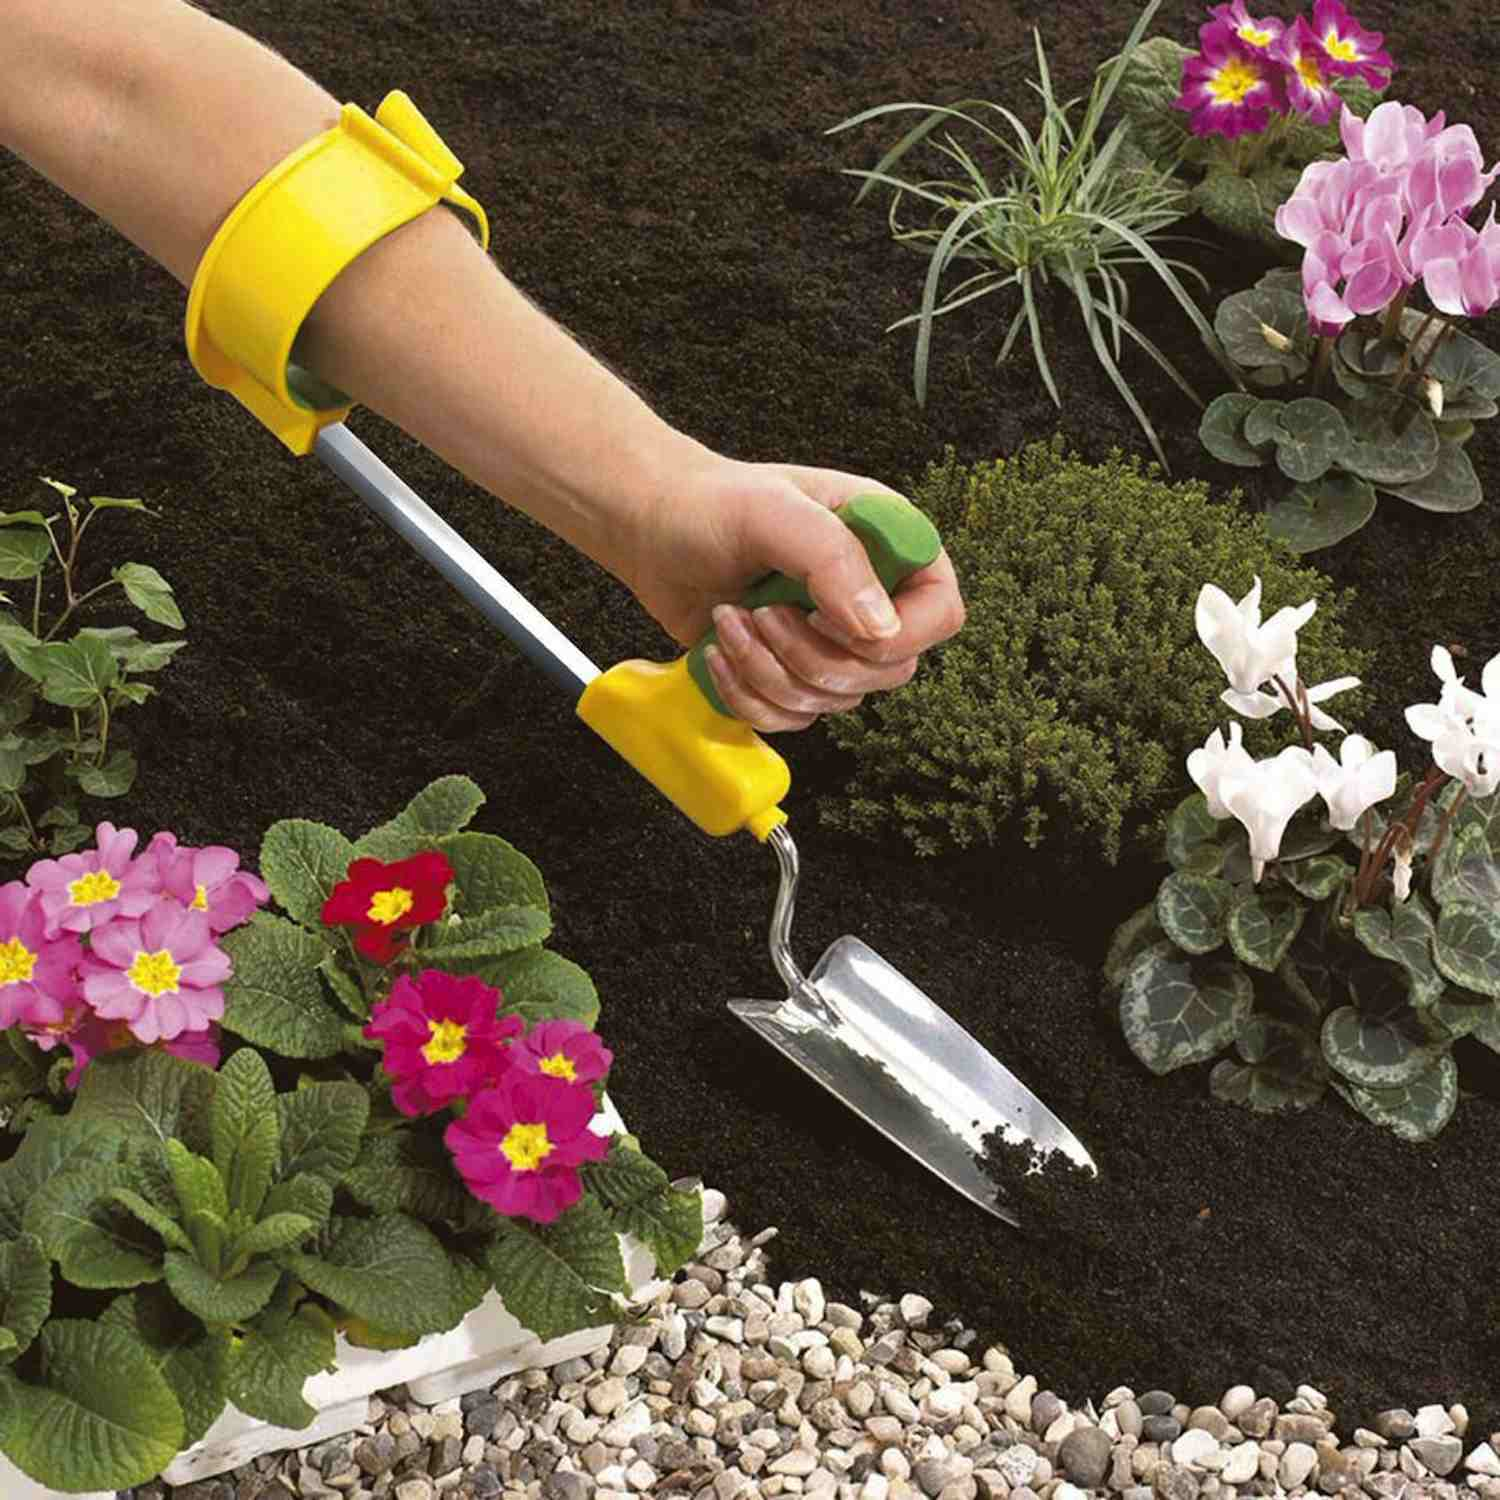 7 Adaptive Gardening Tools for People With Disabilities